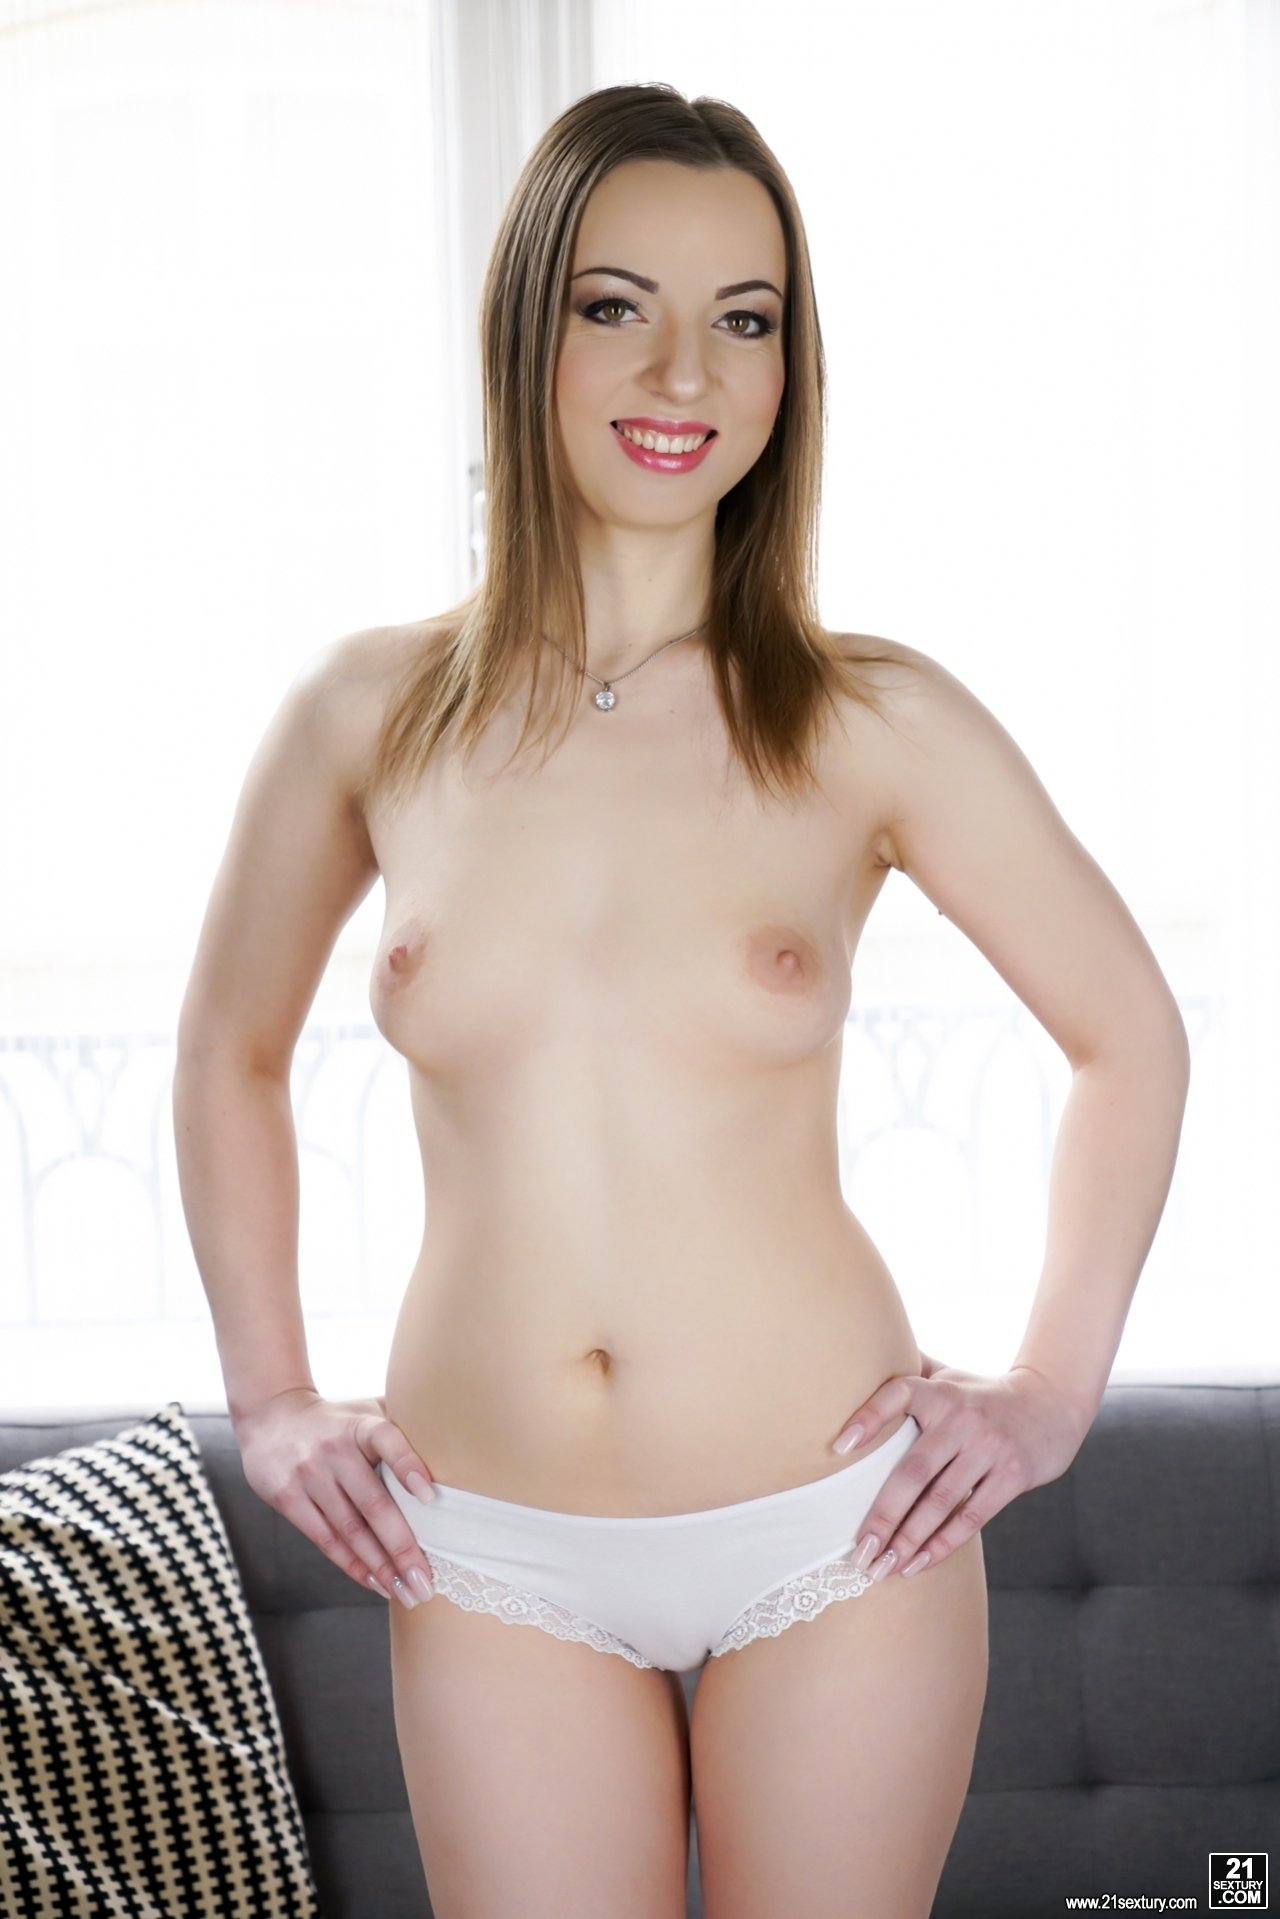 Girls with silicon boobs Javahdv com